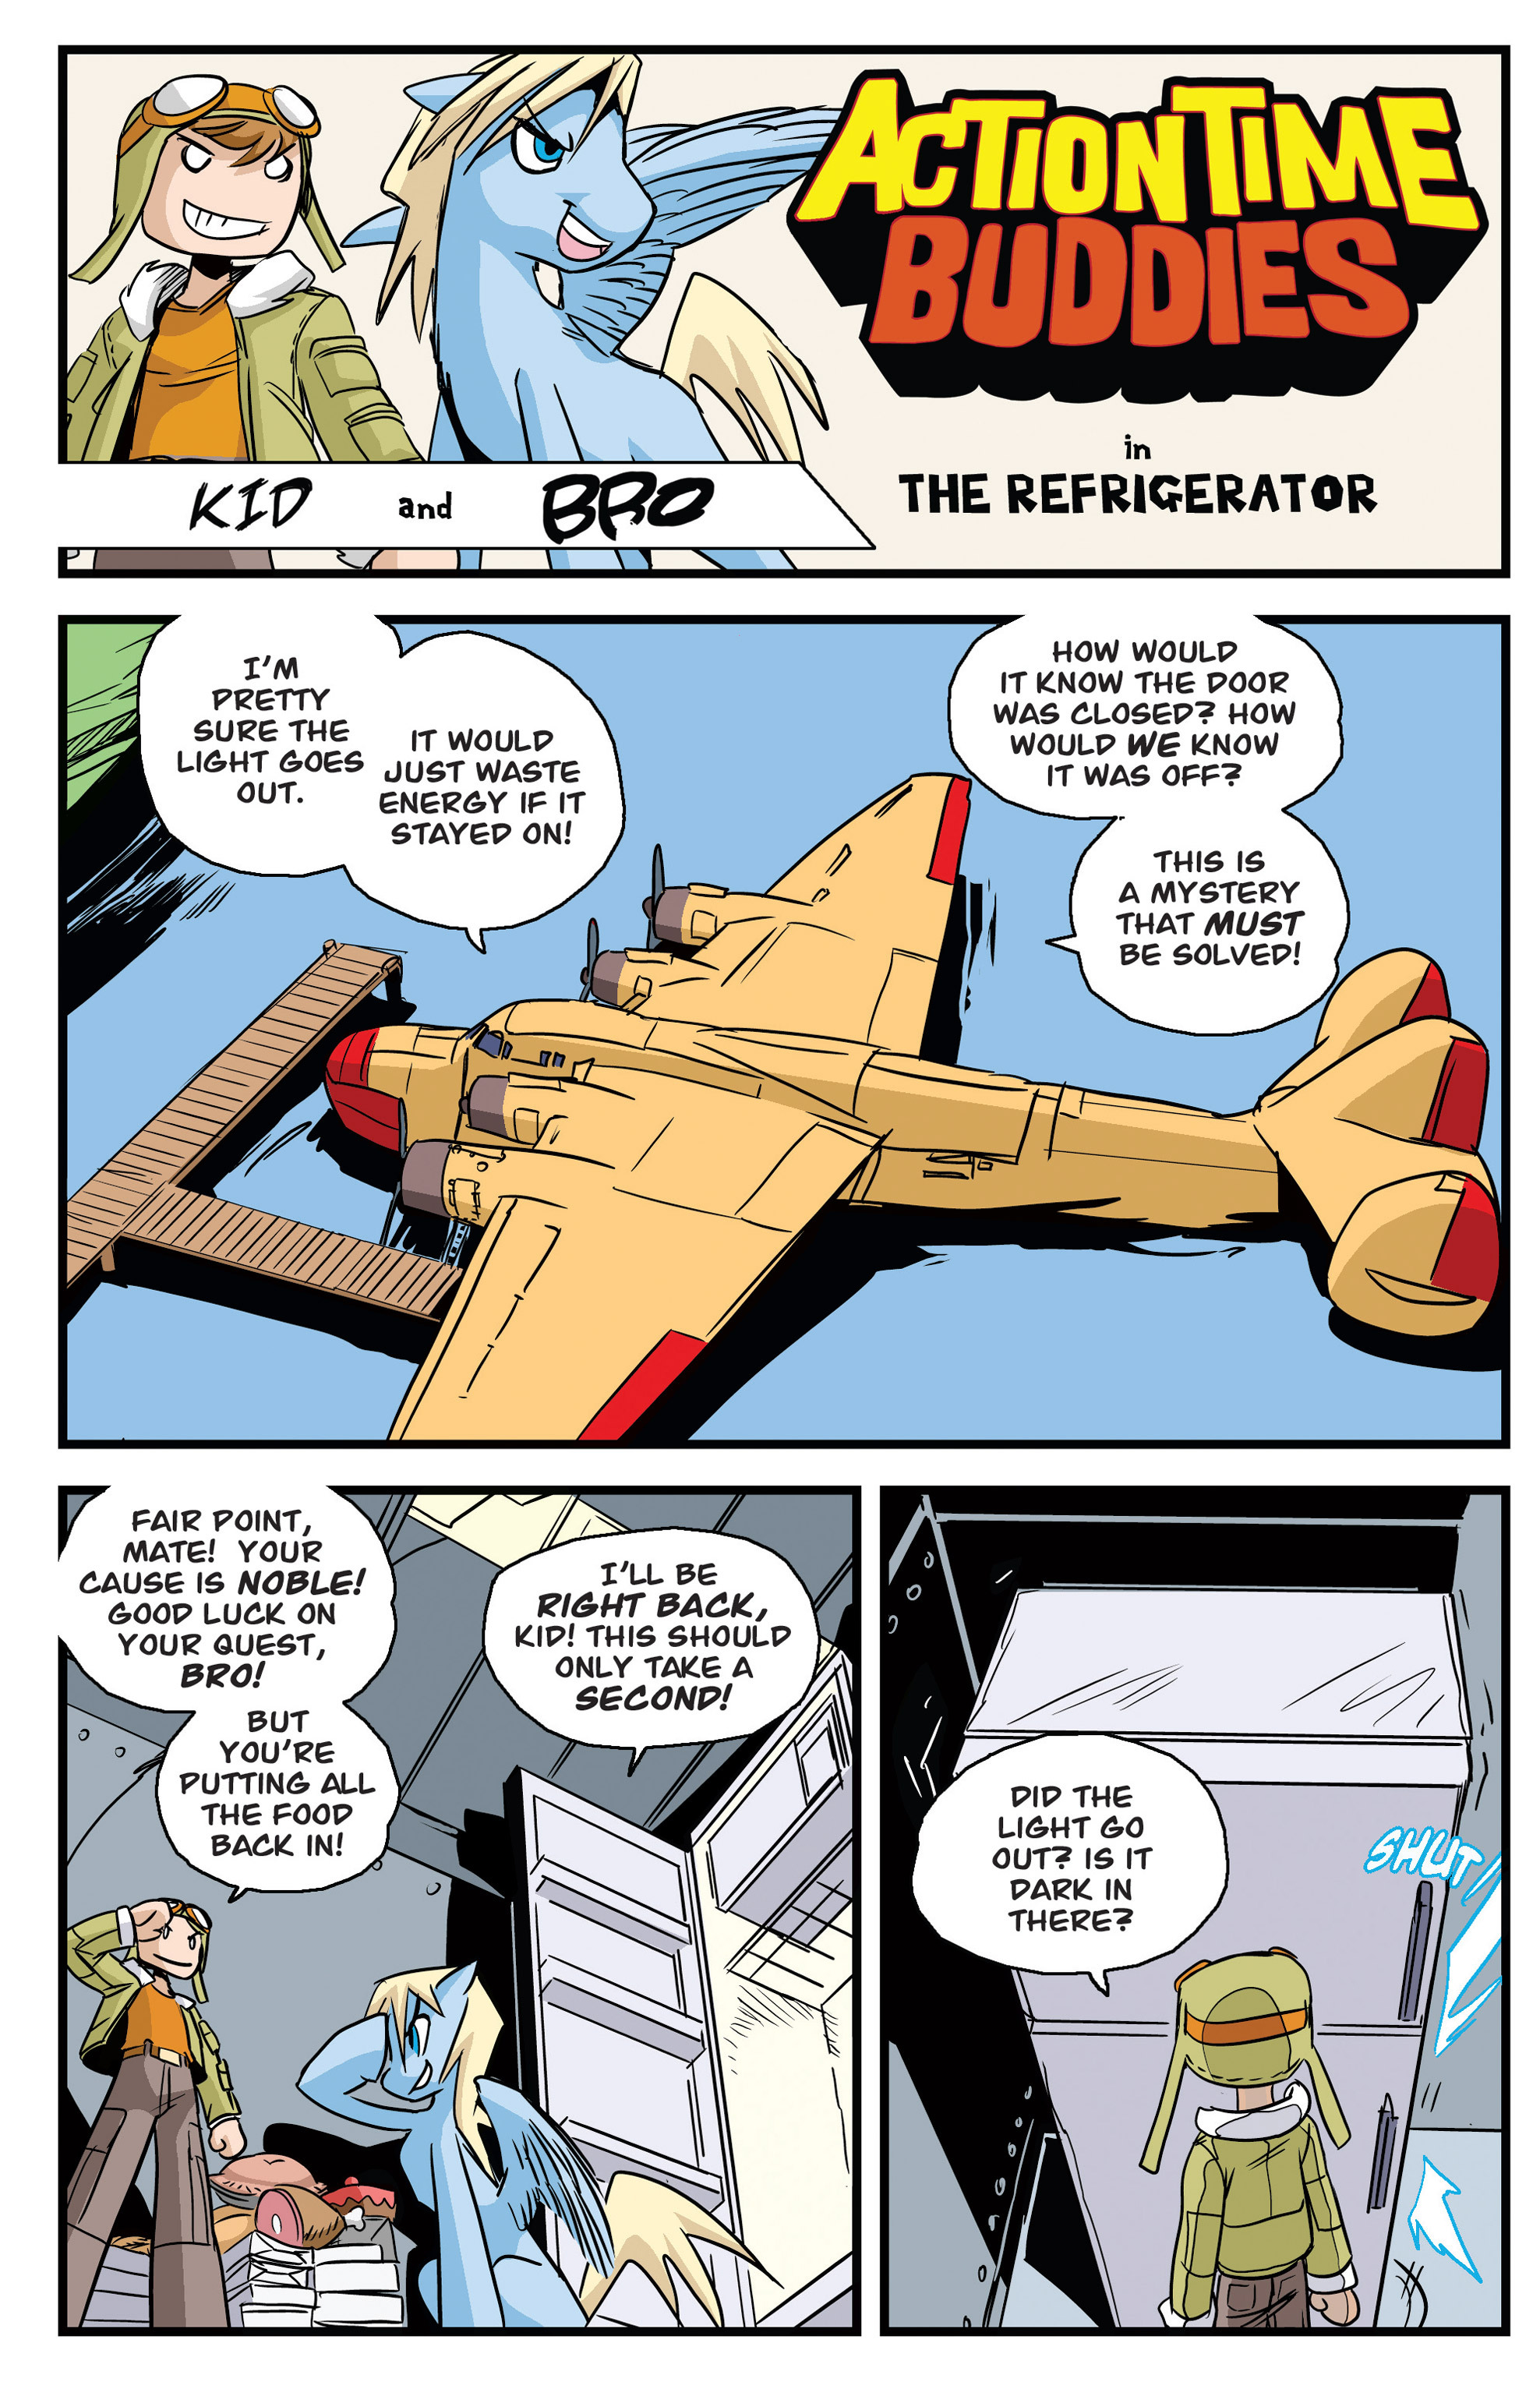 Read online Action Time Buddies comic -  Issue #Action Time Buddies Full - 3